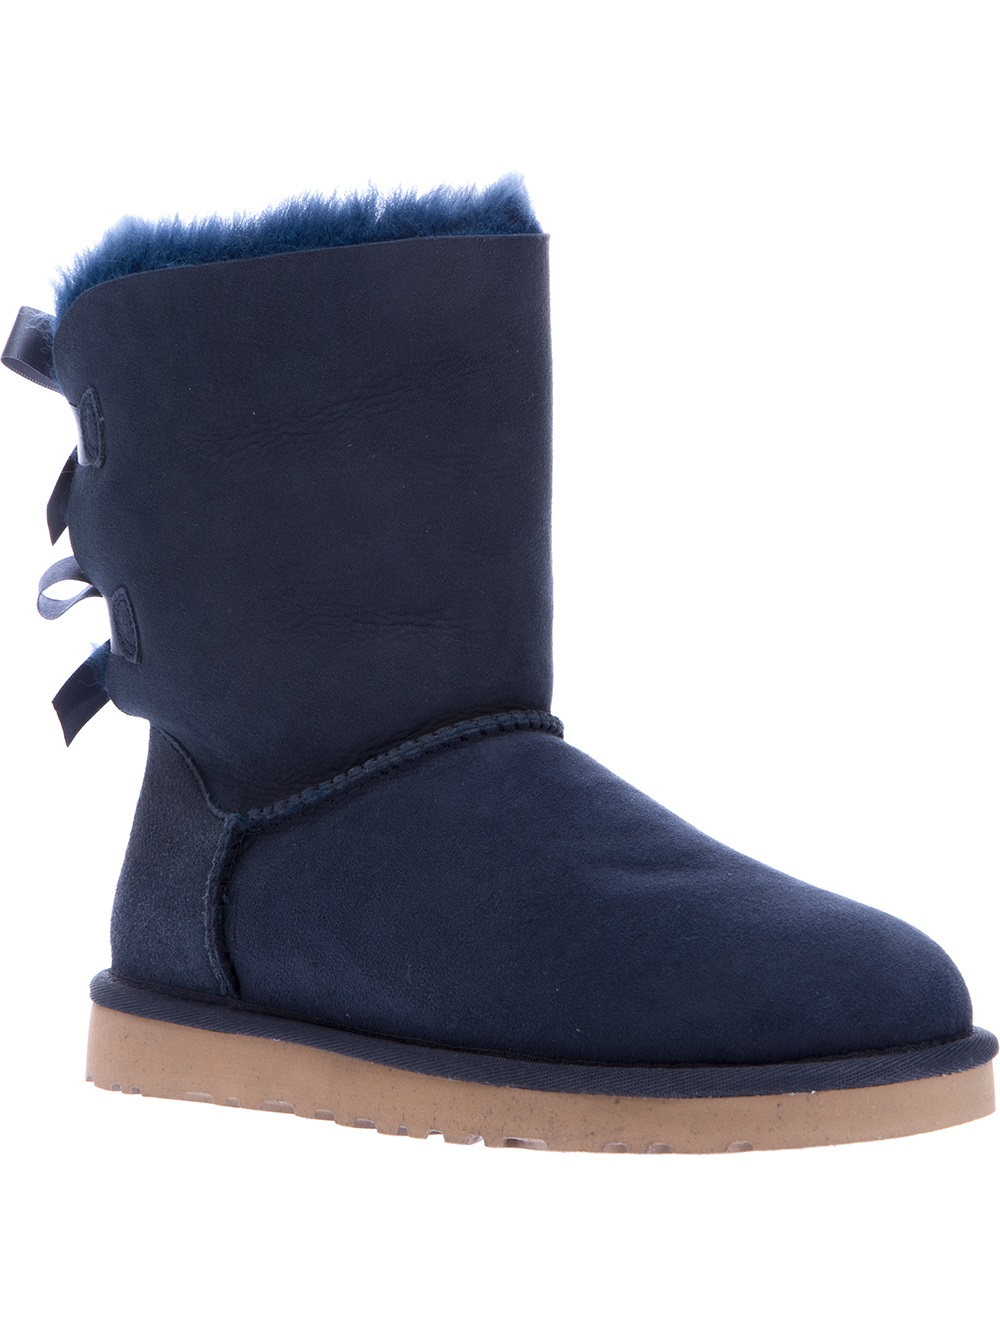 ugg bailey bow boot in blue navy lyst